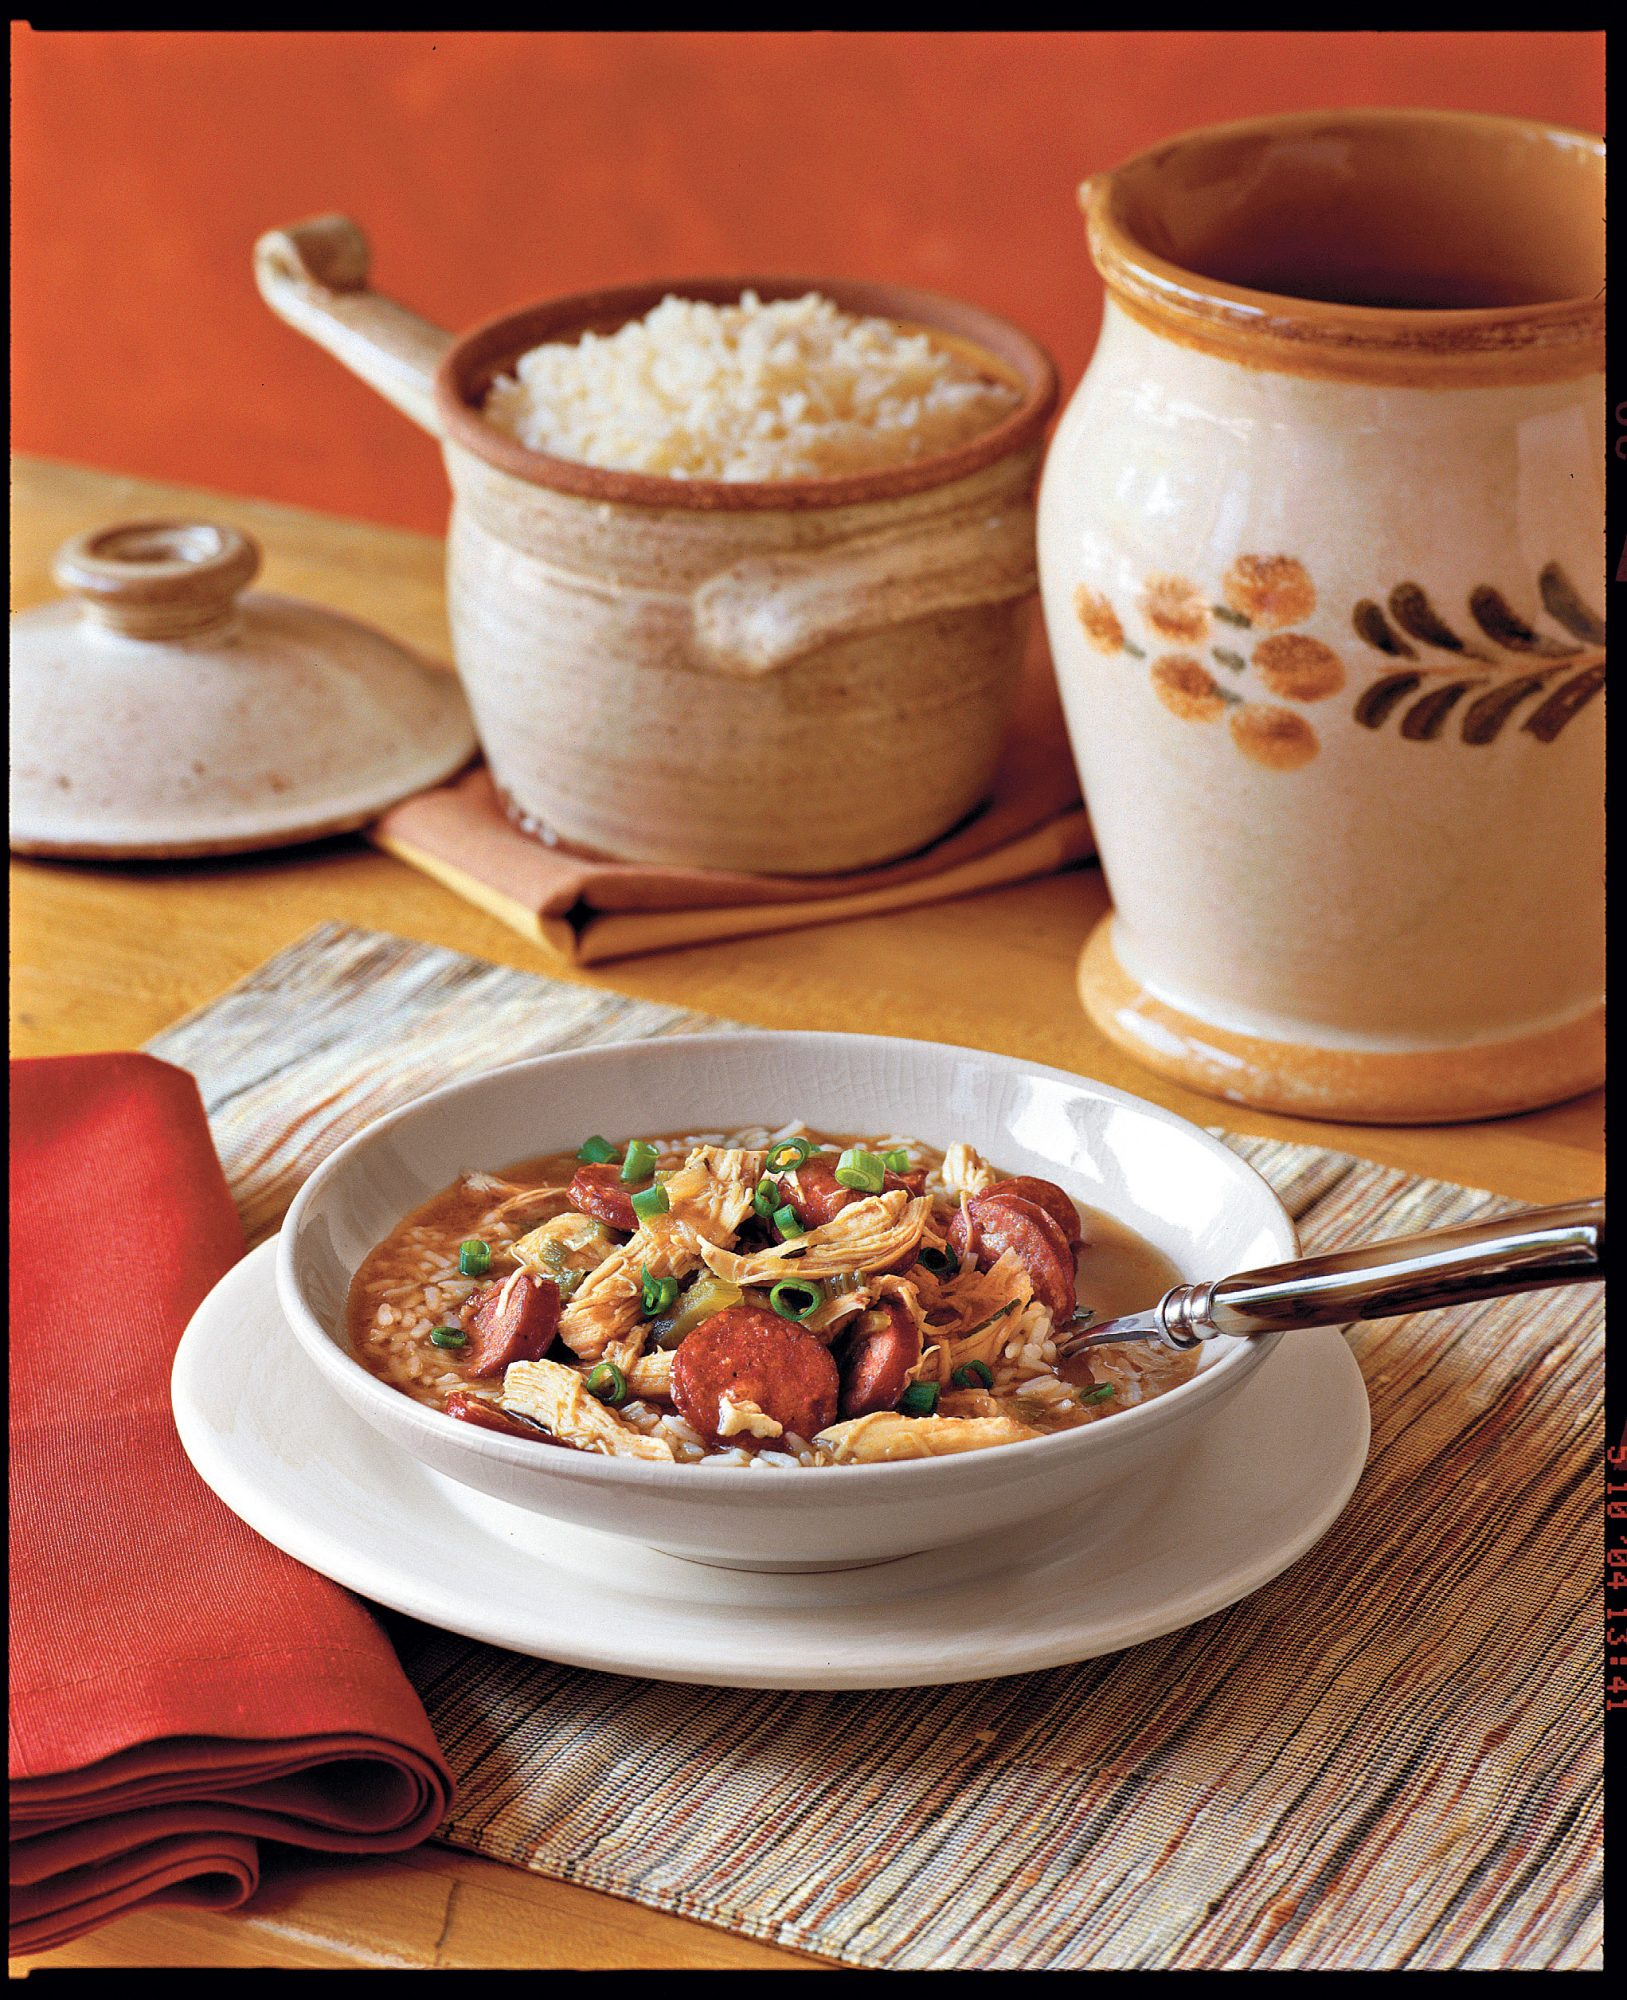 Cajun Recipes: Chicken-and-Sausage Gumbo